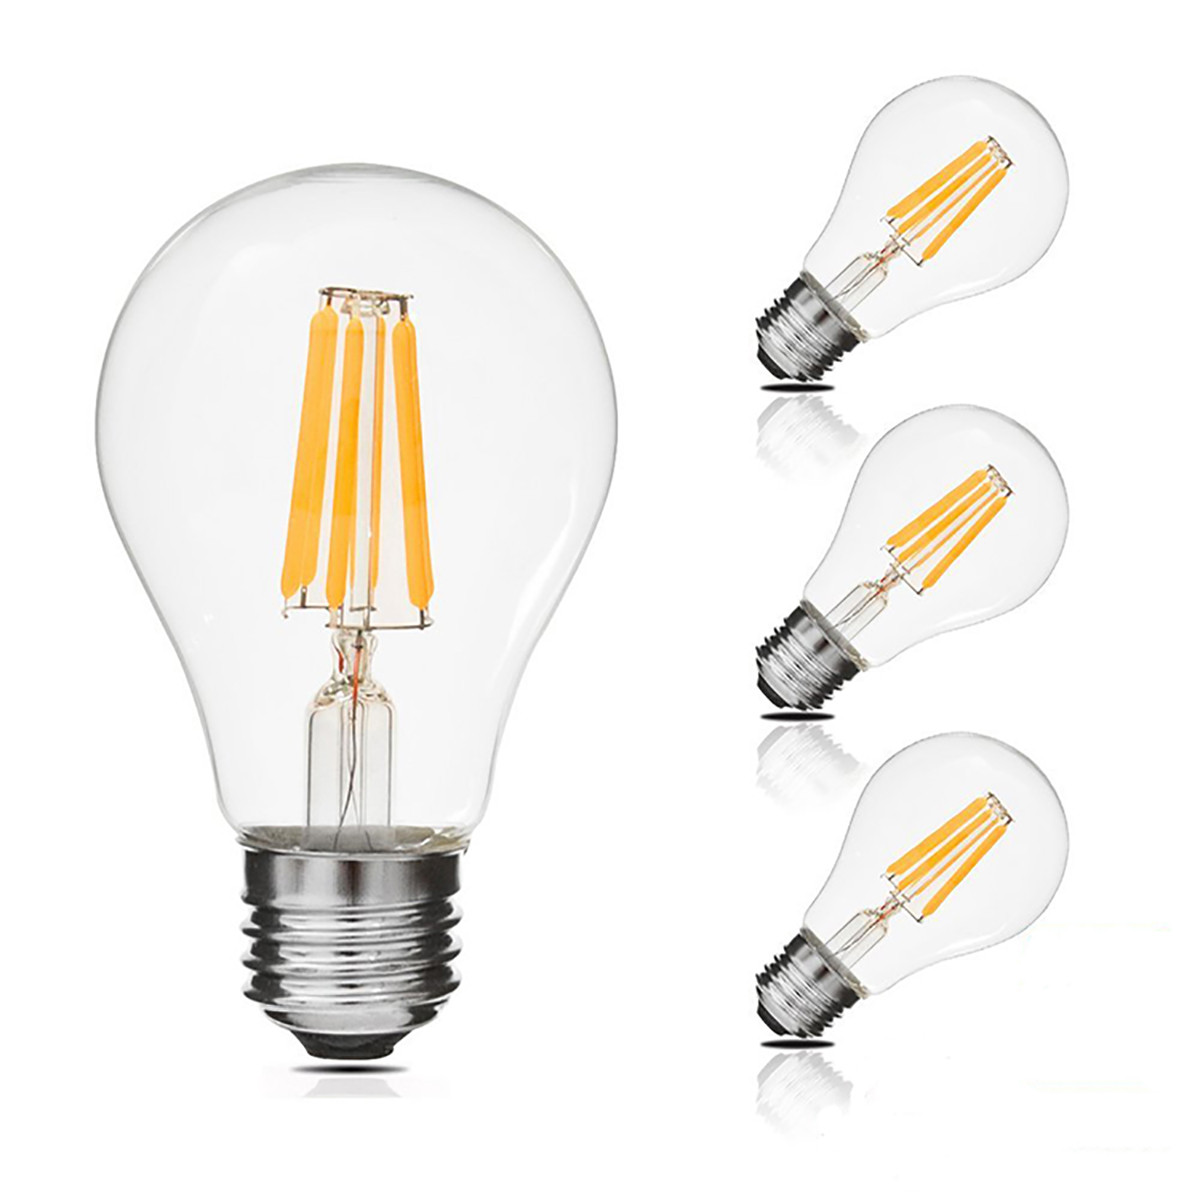 6W Filament LED Globe Light Bulb Light A60 Chandelier Bulb with E26 Base 60W Equivalent Halogen Replacement